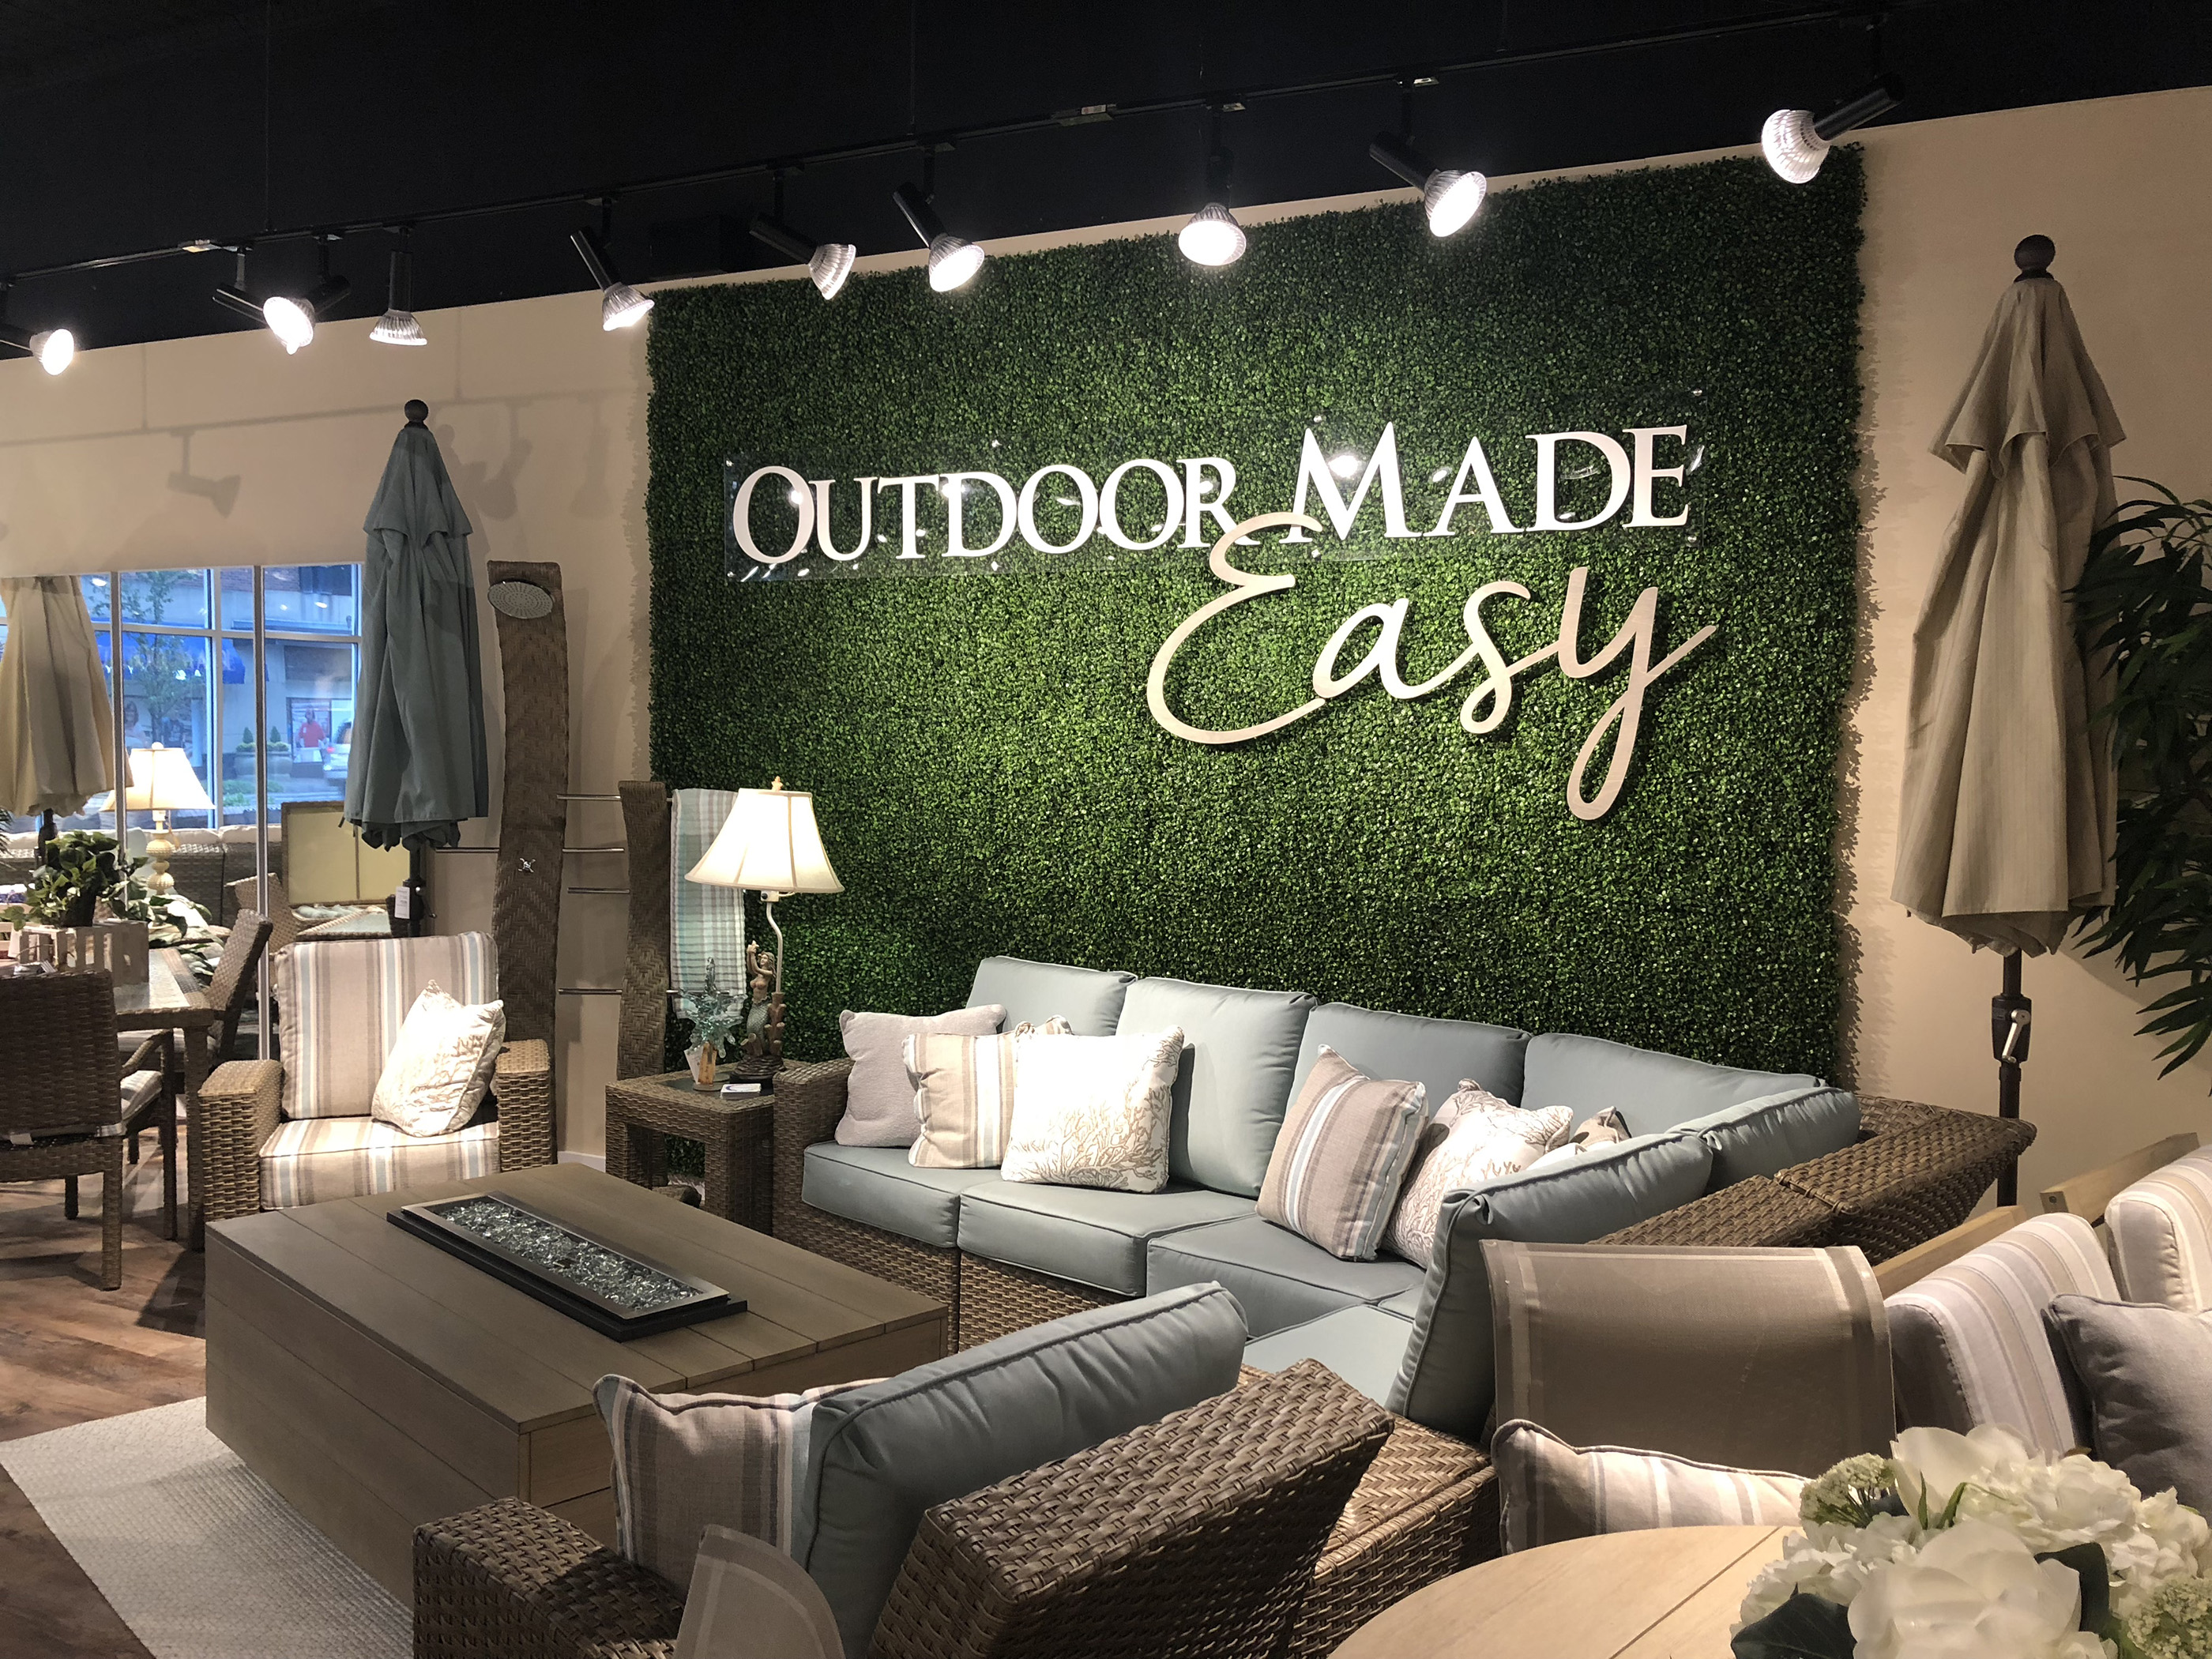 Watermark Living Returns to HP Market with Outdoor Living Pop Up Concept for Retailers